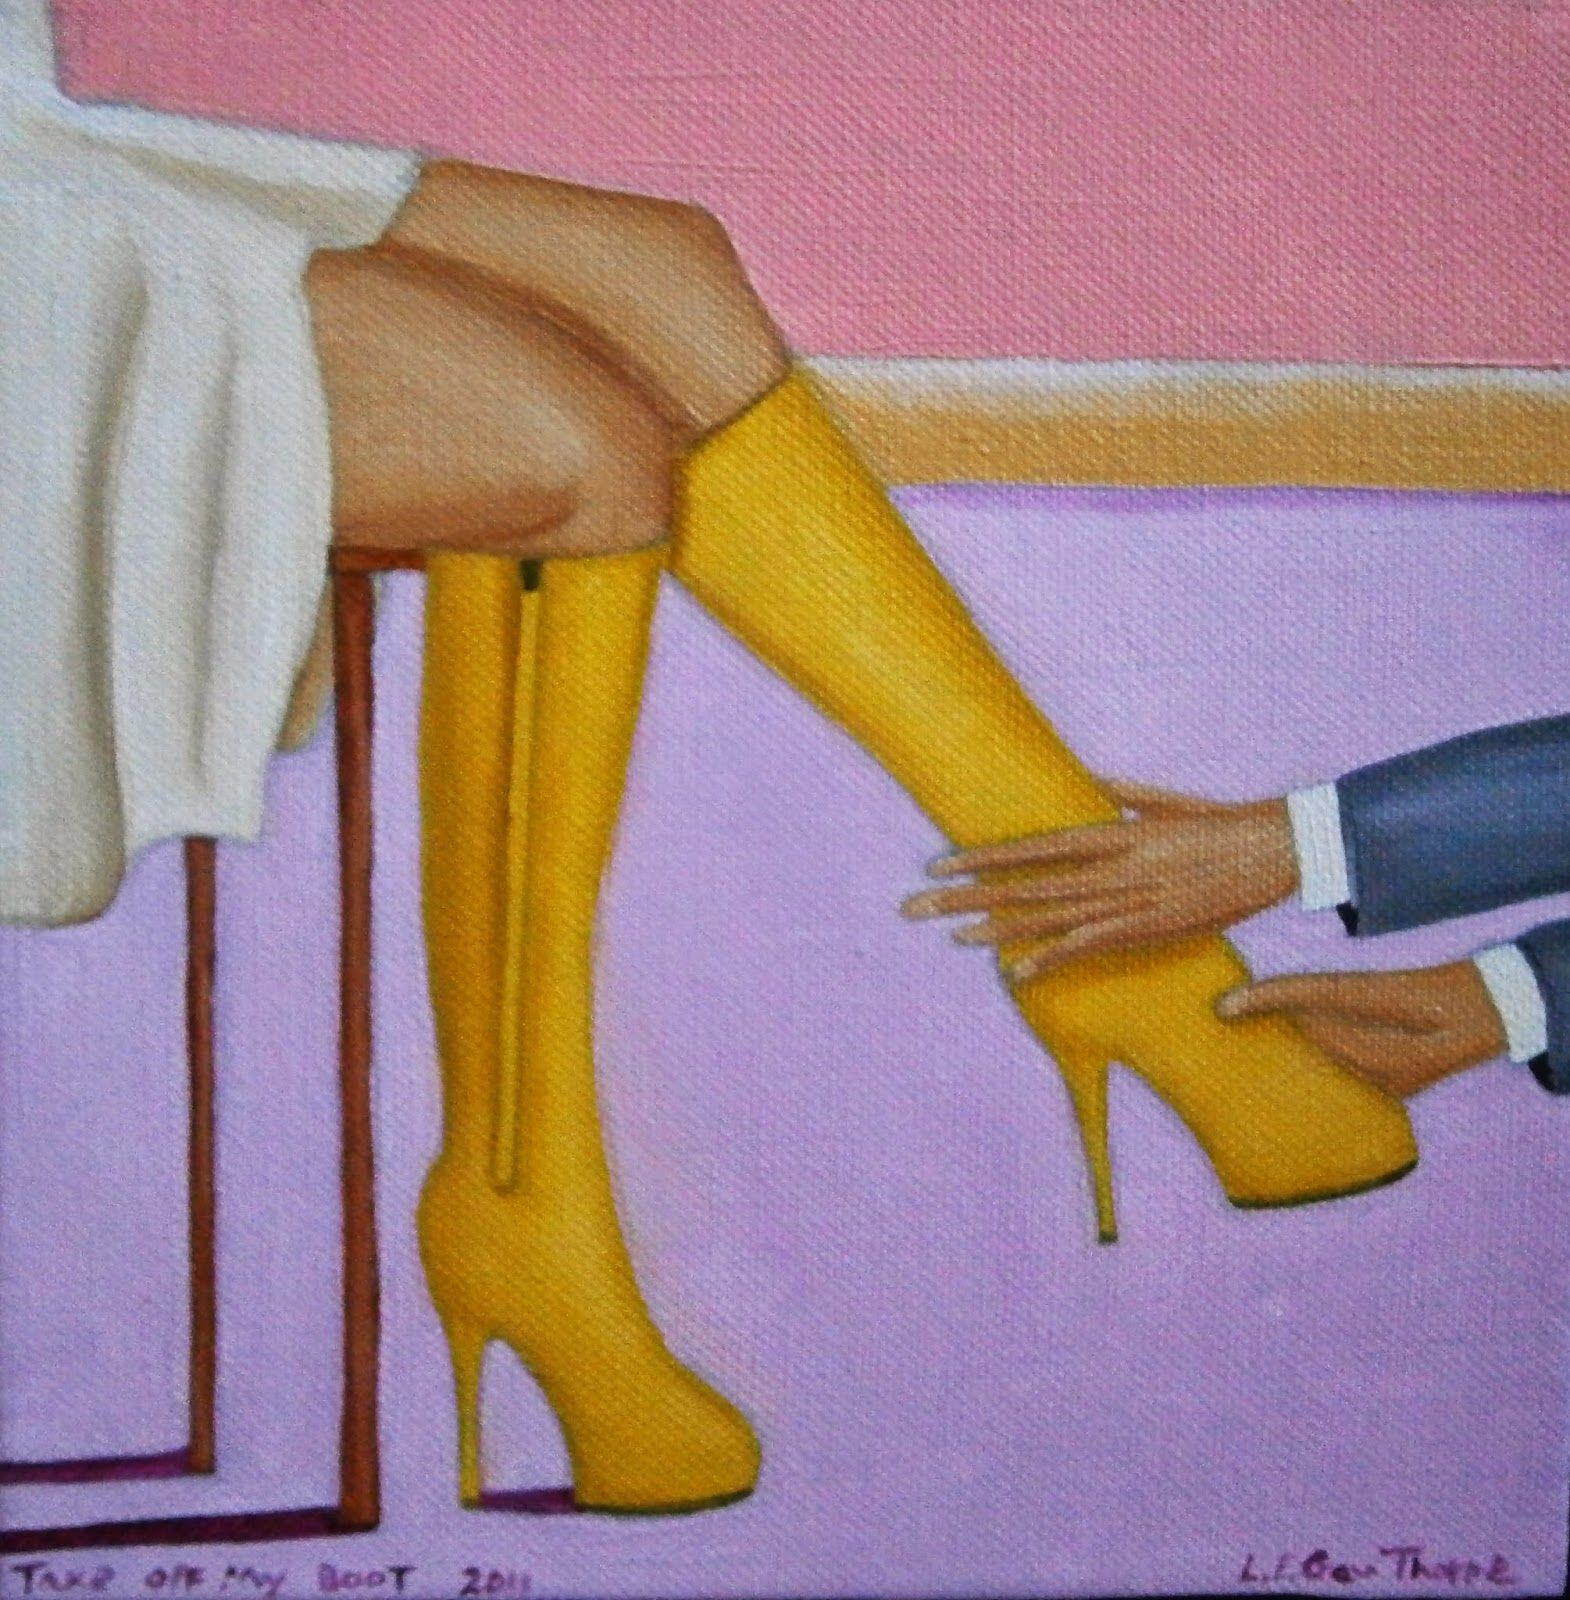 A man being ordered by a woman to take off her yellow kinky boot.